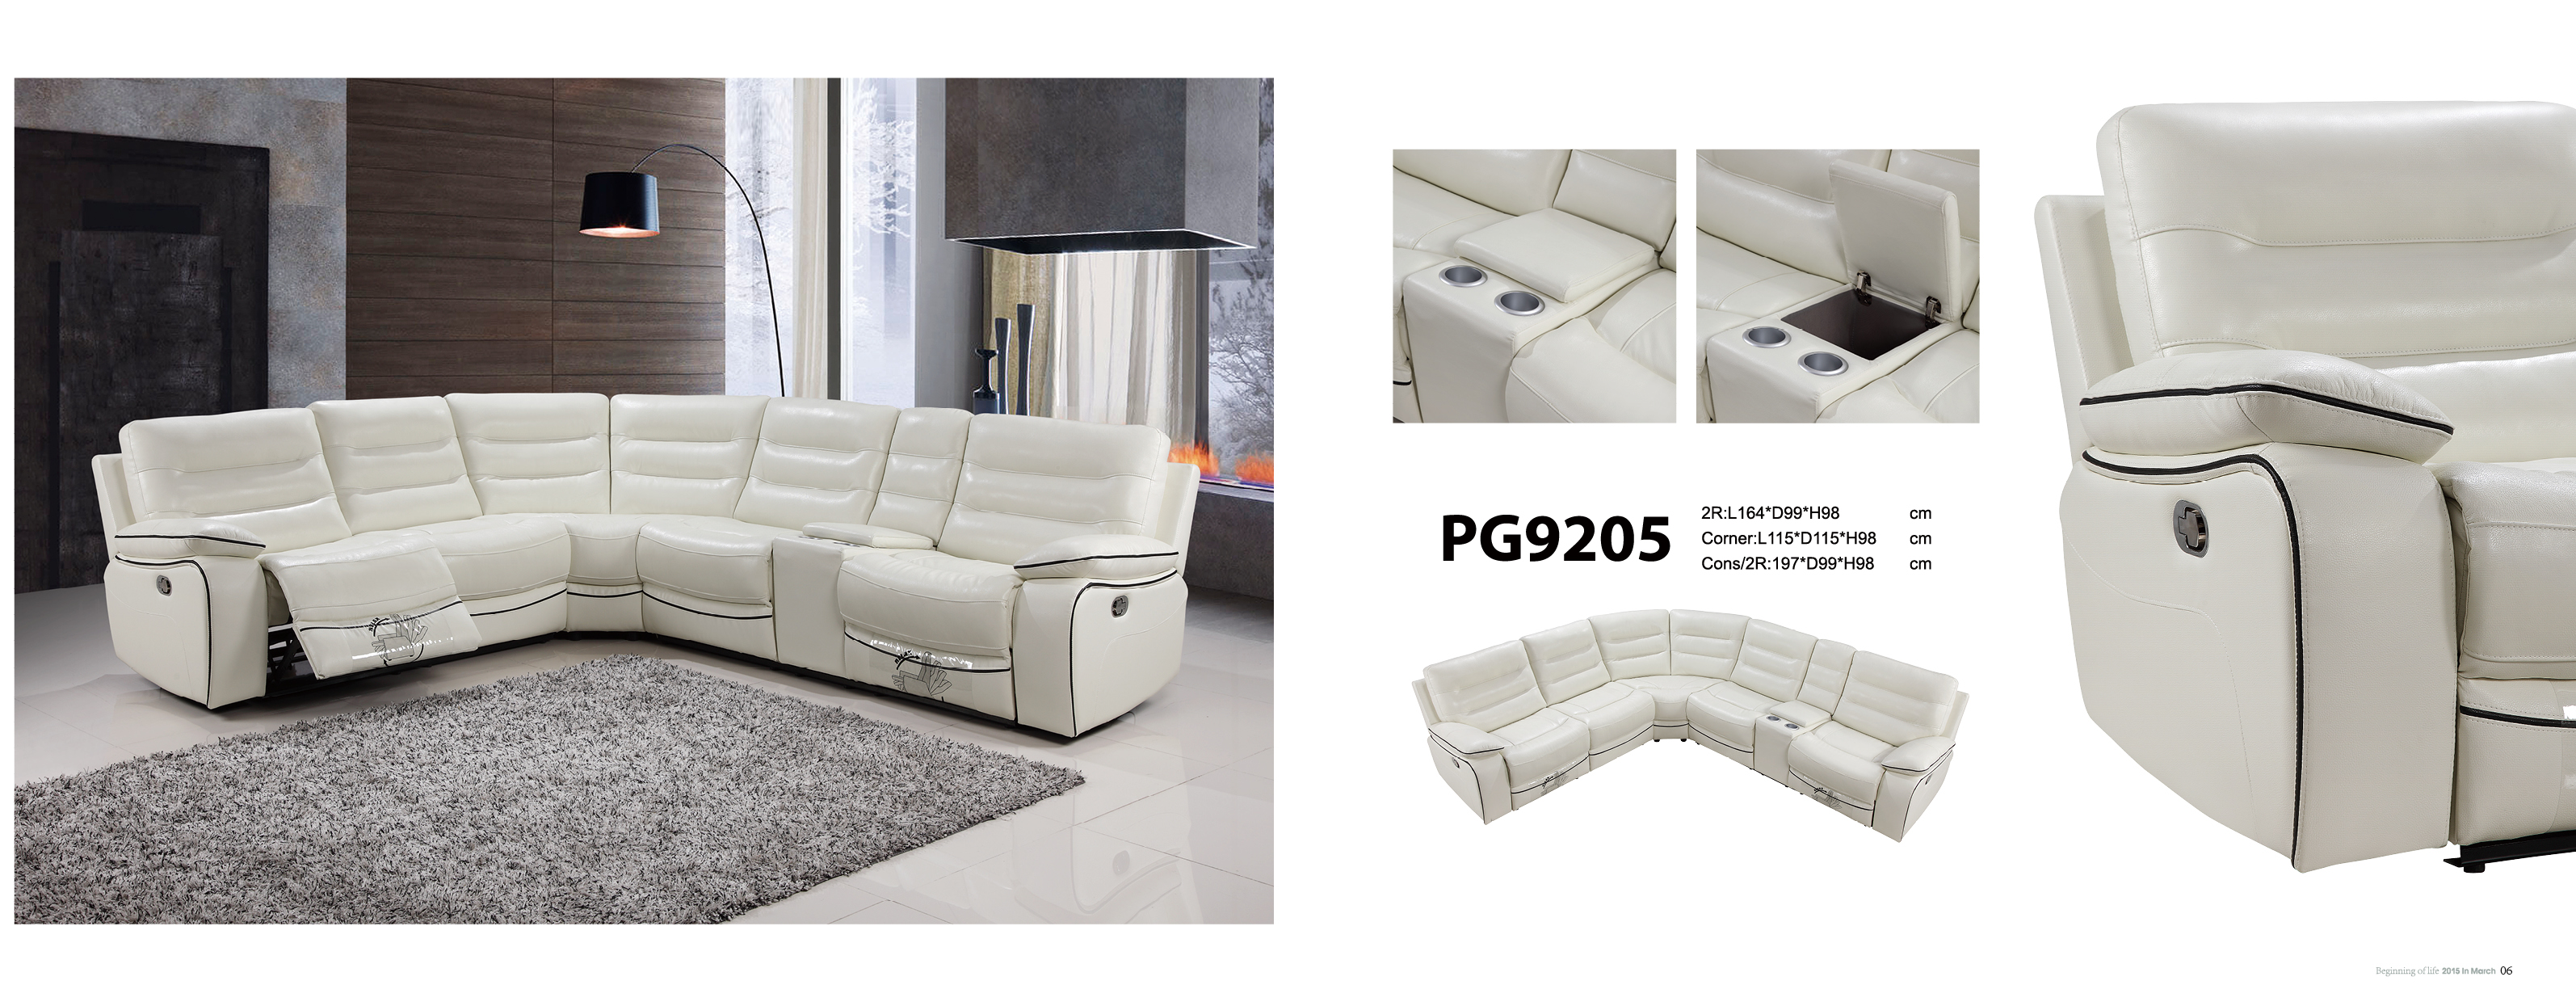 Manly Modular Lounge With Recliner Fortune Furniture